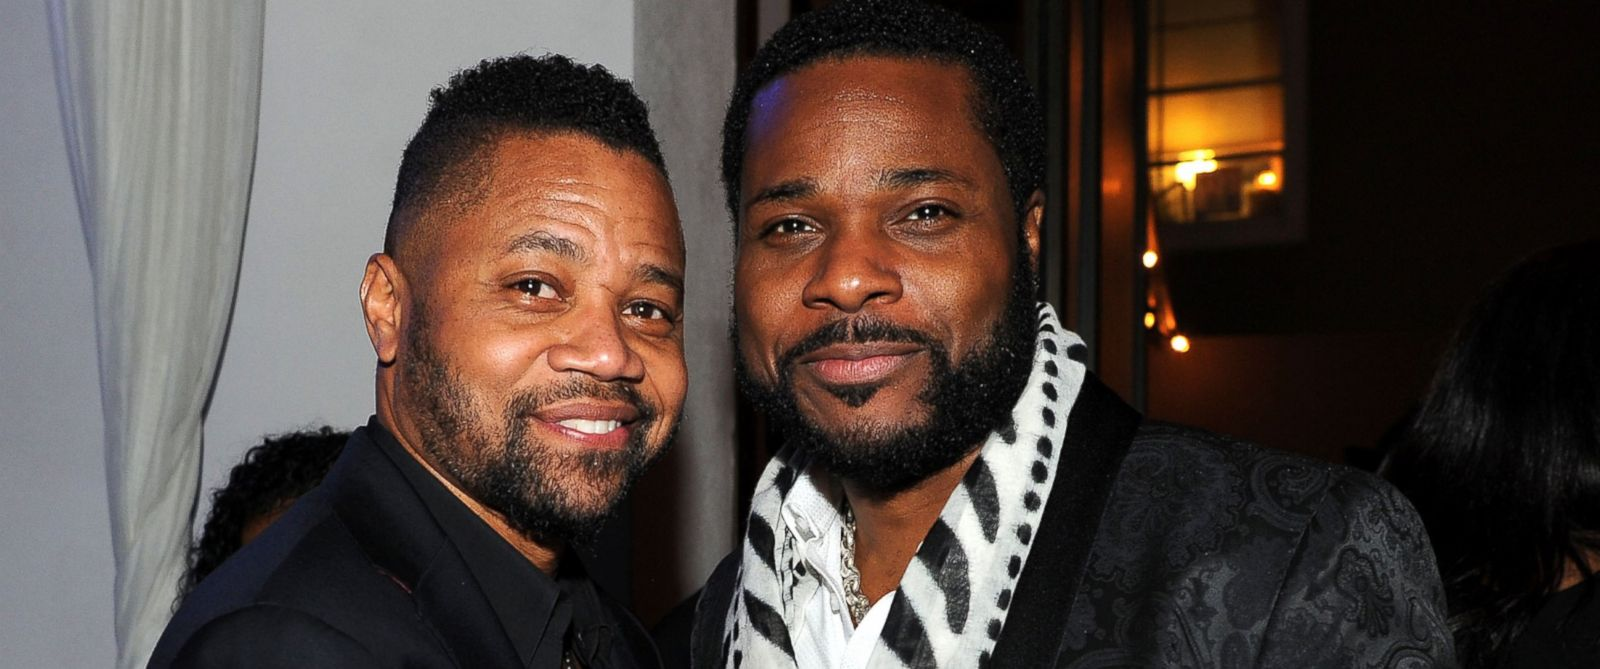 """PHOTO: Cuba Gooding Jr. and Malcolm-Jamal Warner at the party following the premiere of FXs """"The People v. O.J. Simpson: American Crime Story,"""" Jan. 27, 2016 in Los Angeles."""